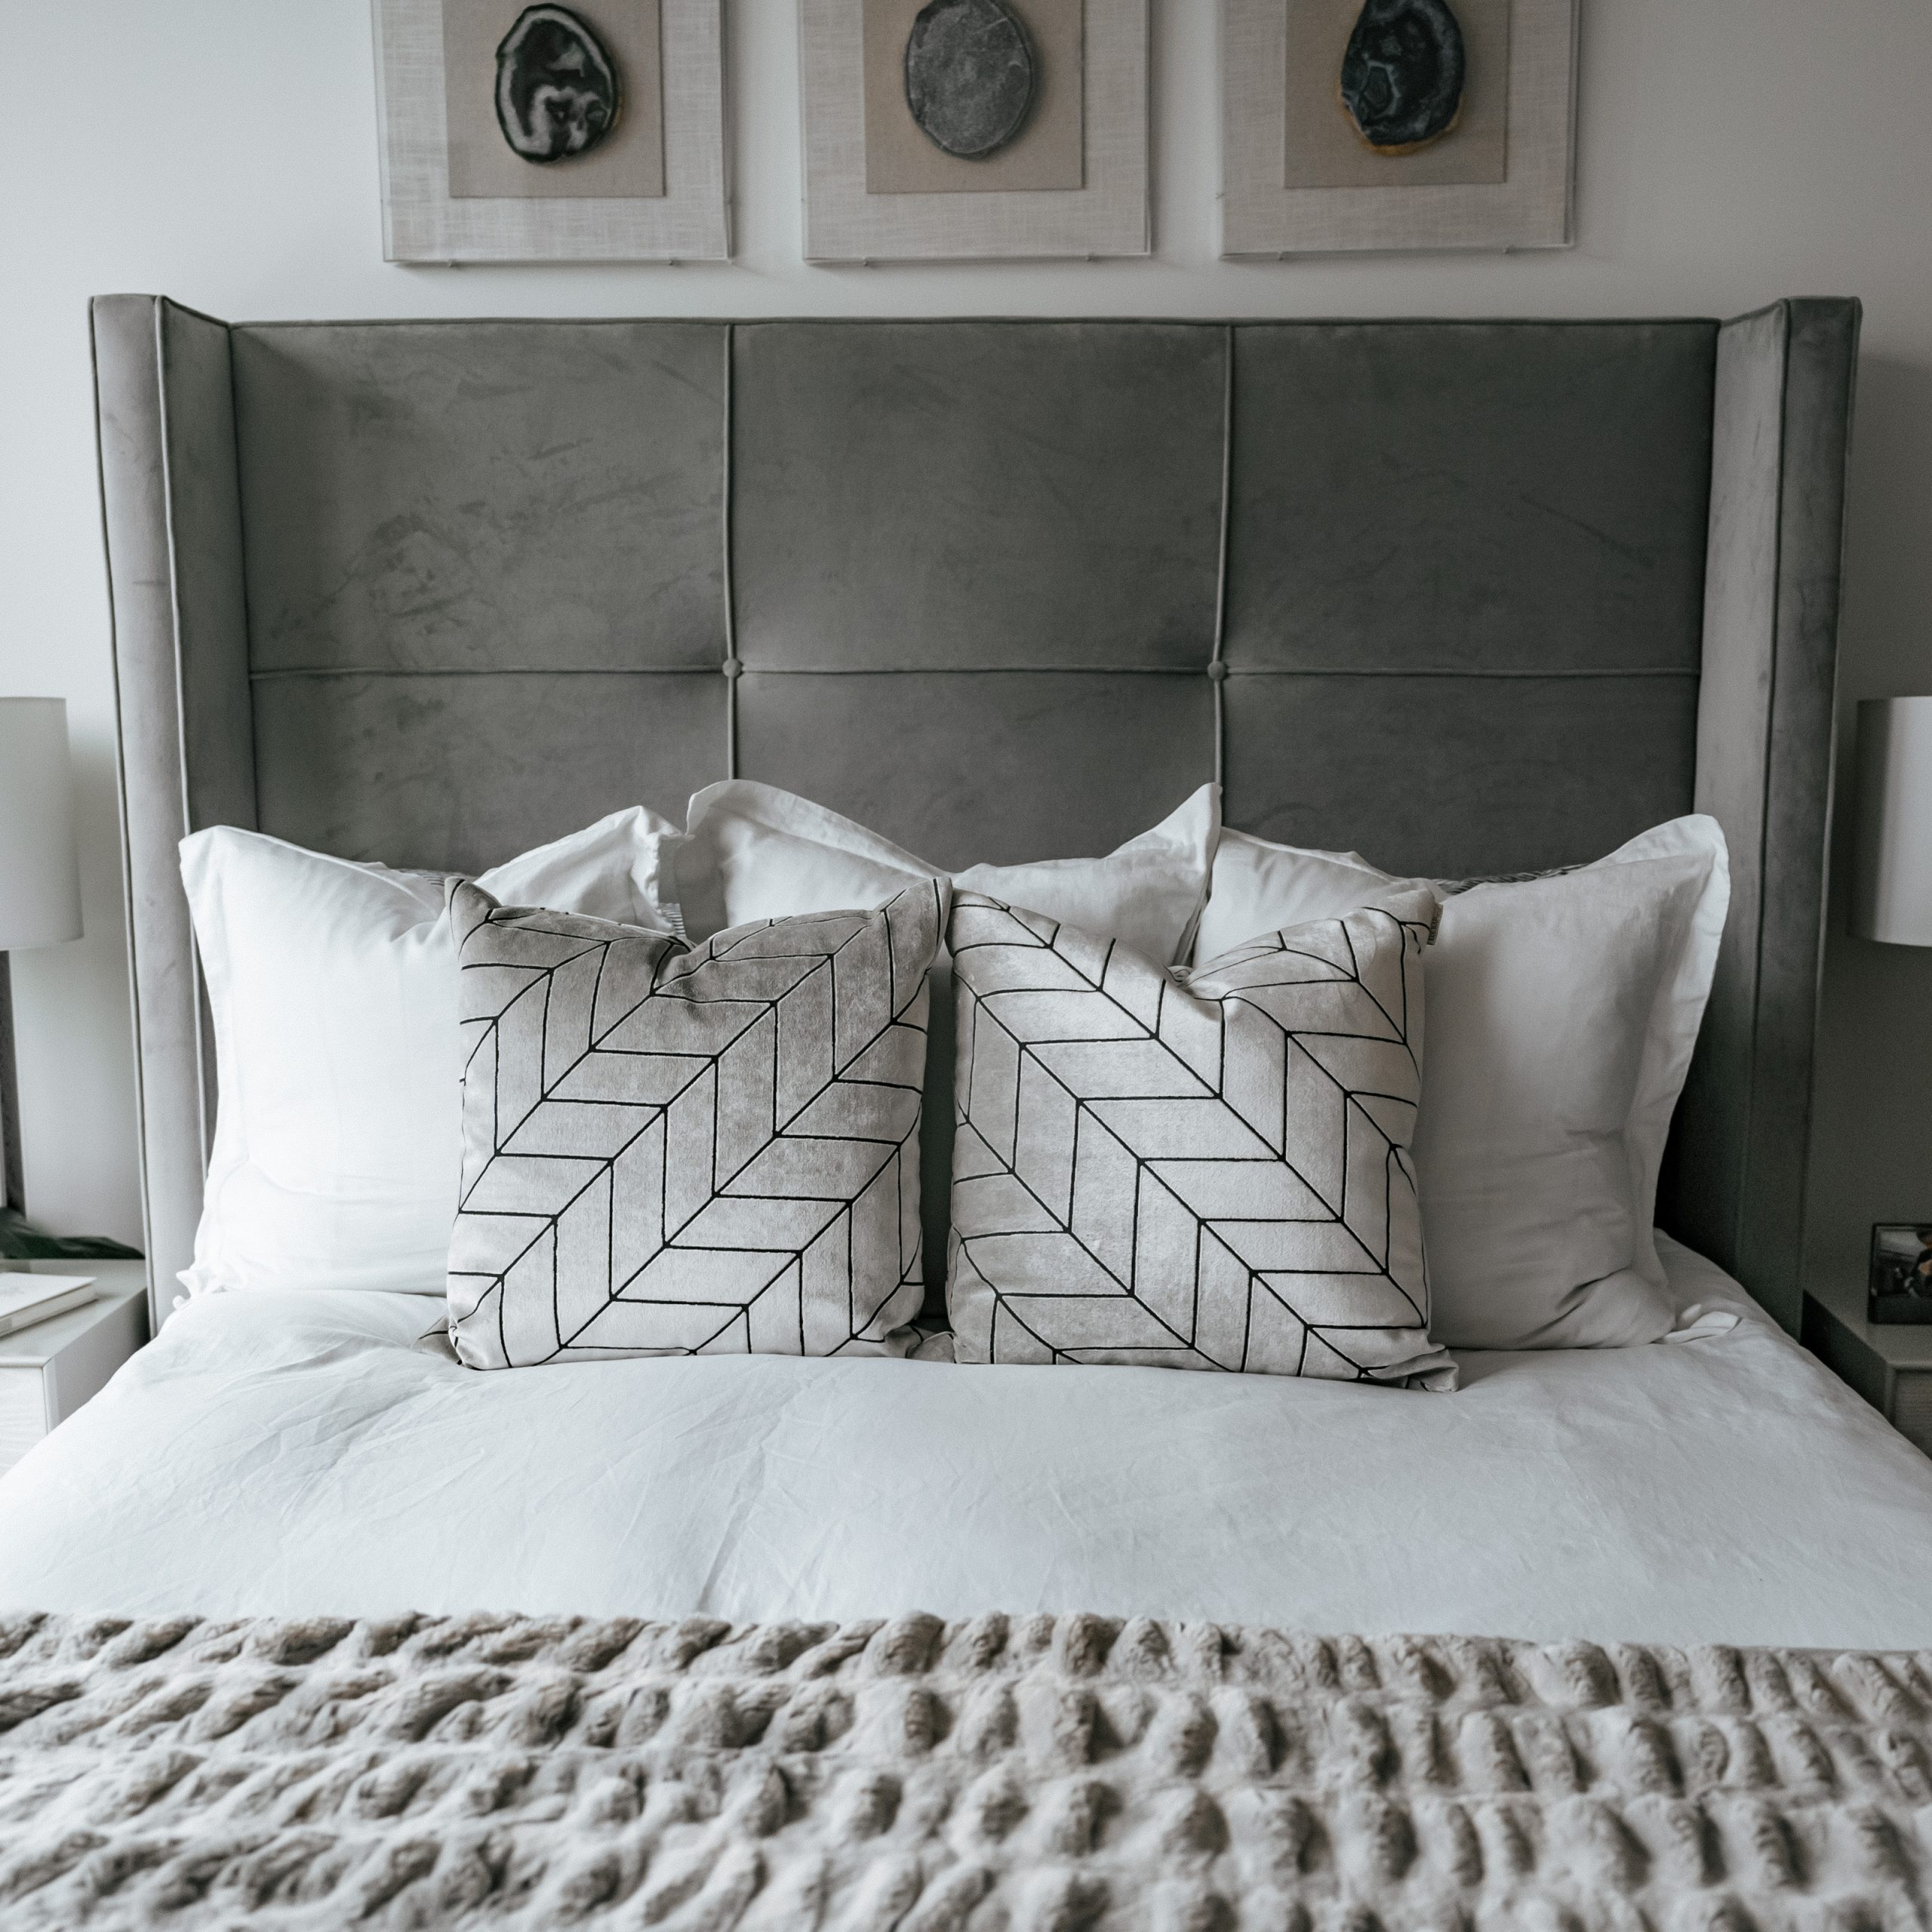 Brooklinen, nyc apartment, best sheets, olivia rink bedroom, olivia rink apartment, olivia rink bedroom, brooklinen sheets, affordable sheets, new york life, new york apartment, nyc living, west elm, kathy kuo home, home decor, bedroom decor